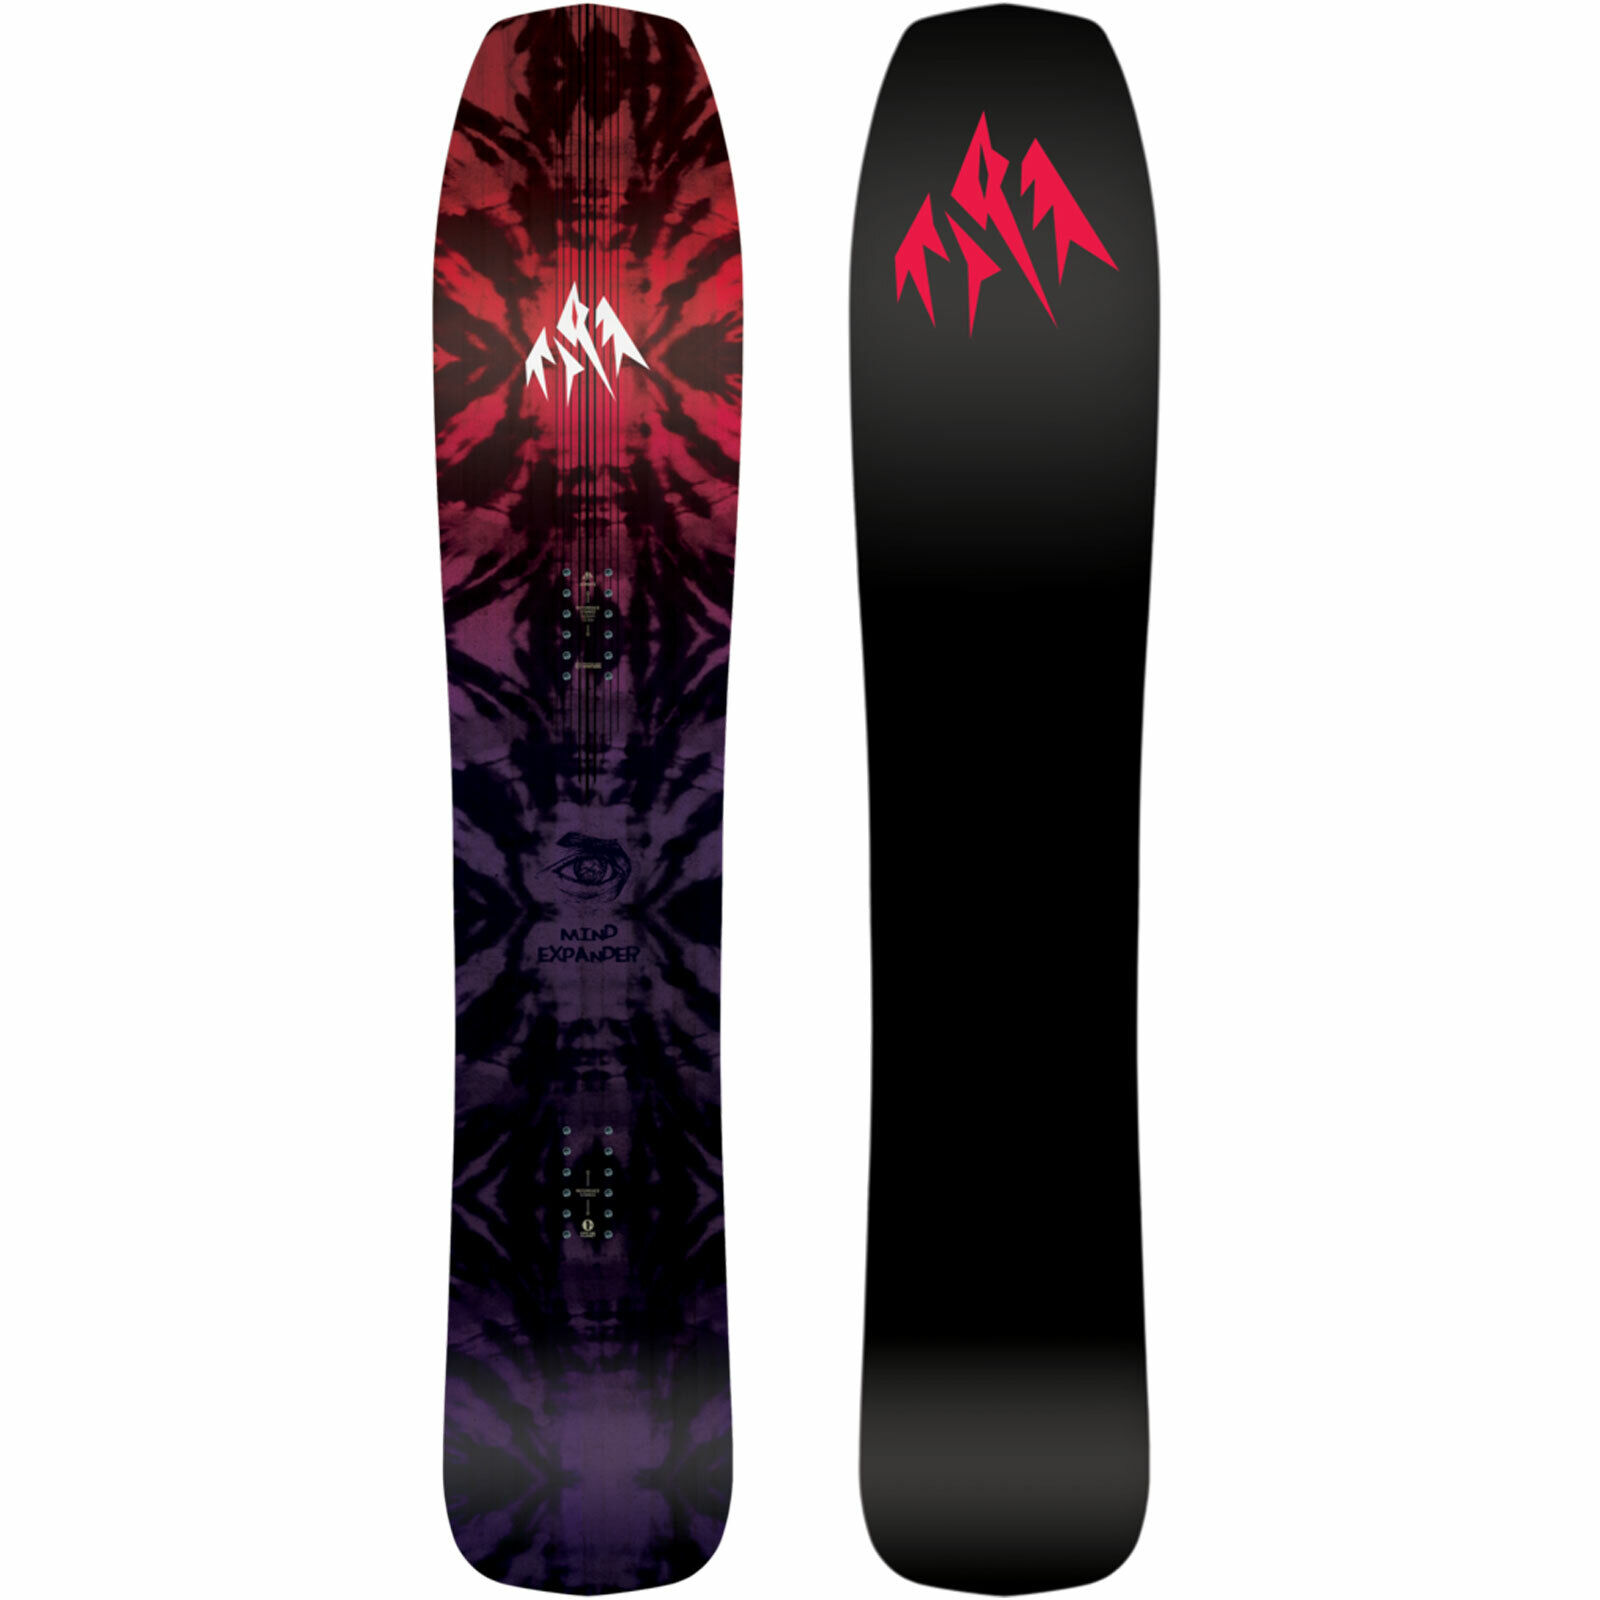 Jones Womens Mind Expander  Women's Snowboard all Mountain Freeride 2019 New  reasonable price